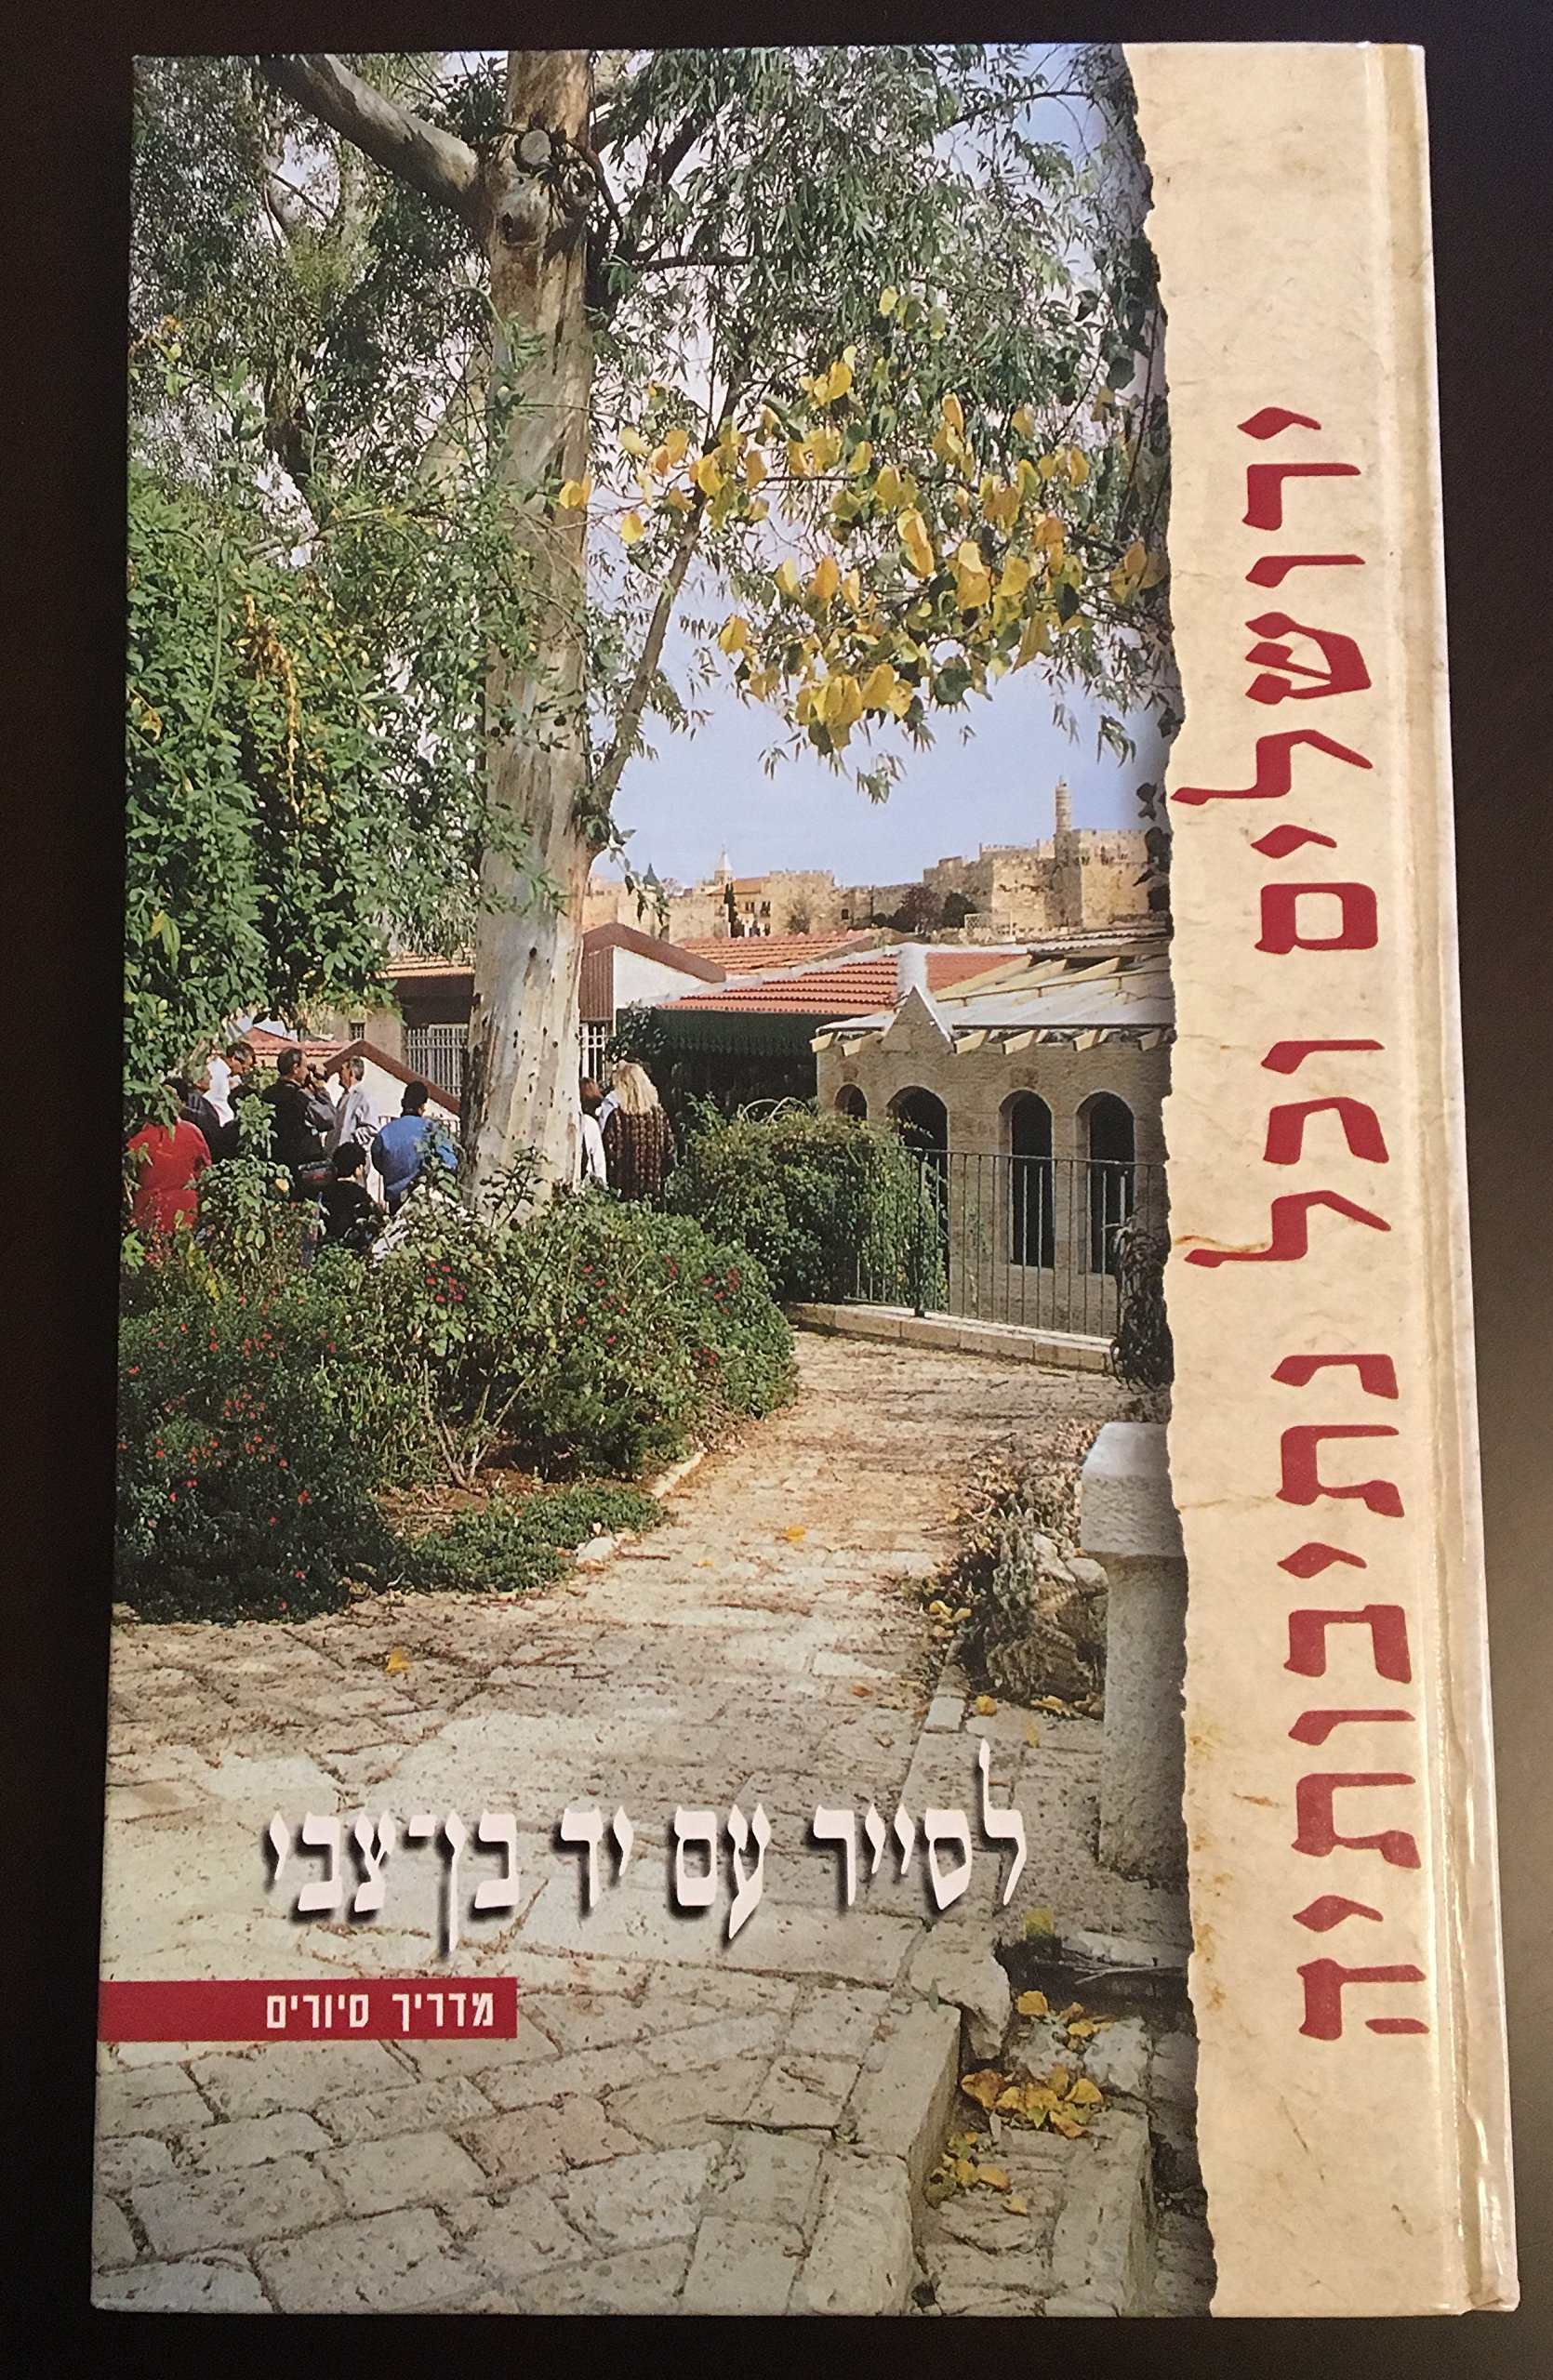 Pathways in Jerusalem: A Walking-Tour Guide Hebrew Language (Hebrew Edition) by Yad Izhak Ben-Zvi Publications,Israel